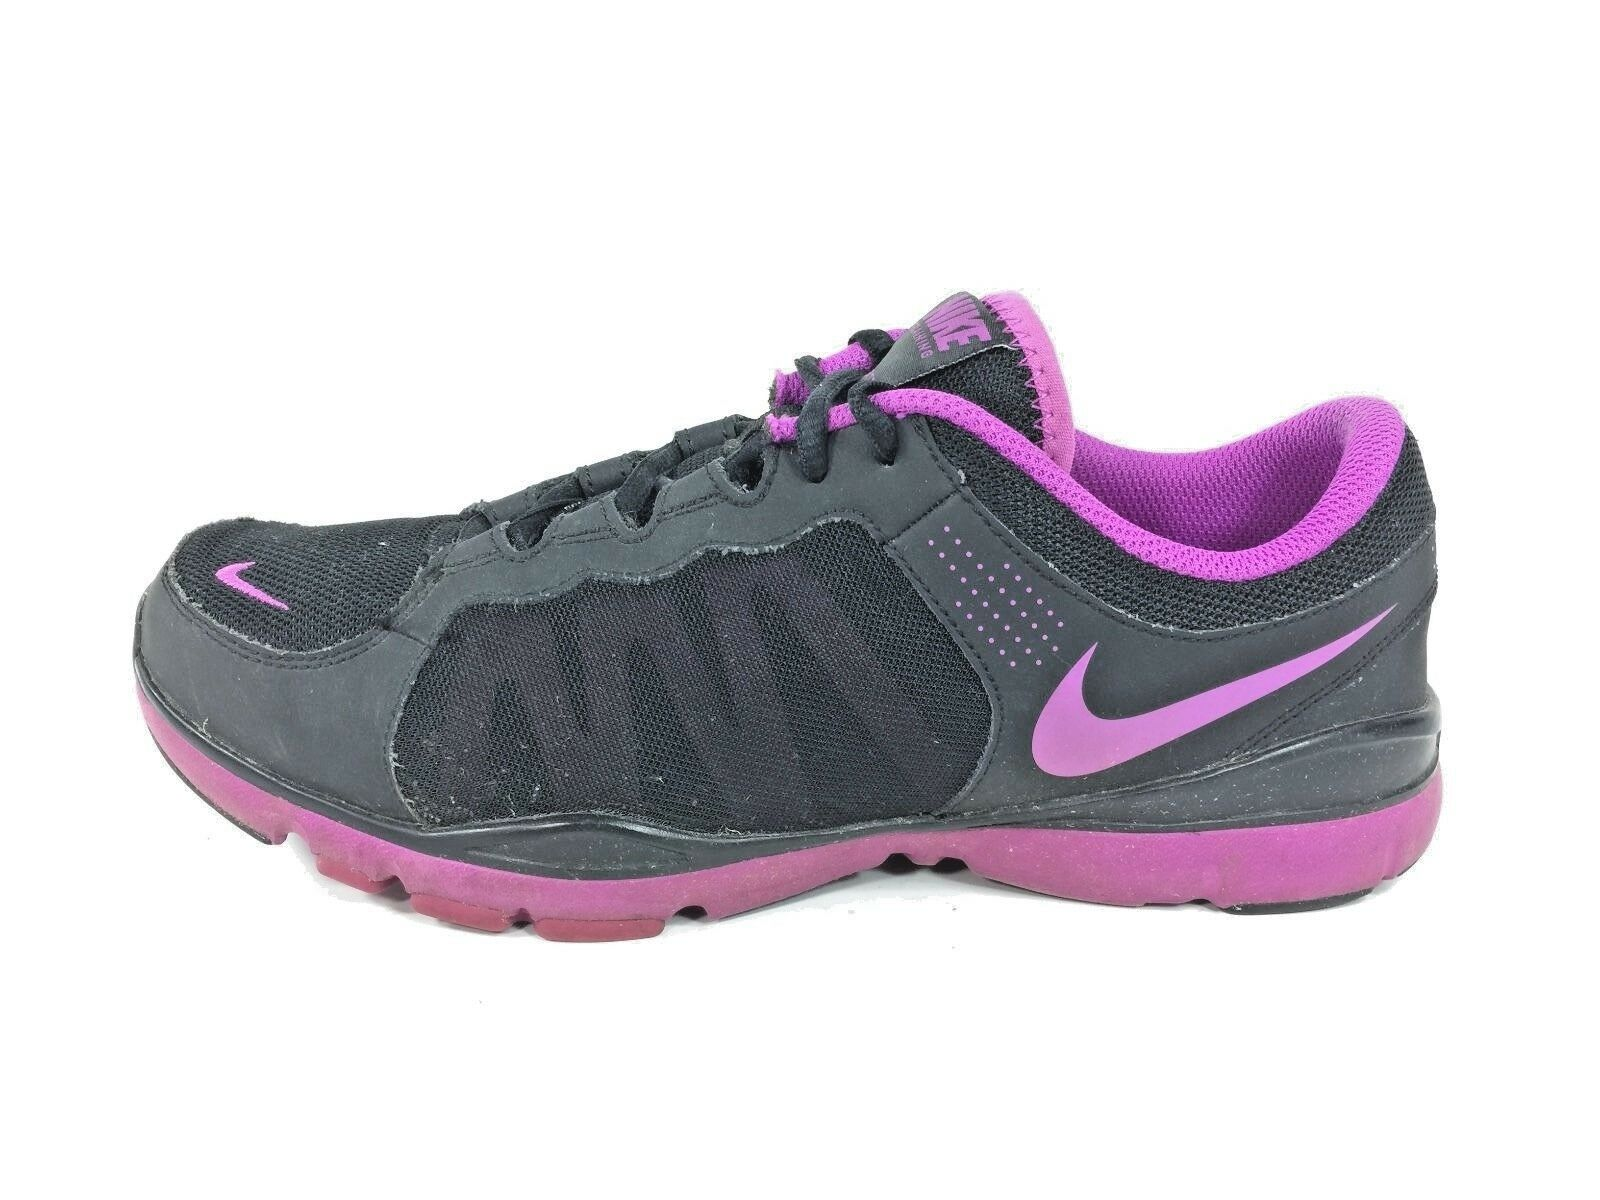 Nike™ TRAINING Flex TR2 Athletic Shoes ~ Everyday 511332-002 ~ Women Sz 9.5 ~ VG best-selling model of the brand